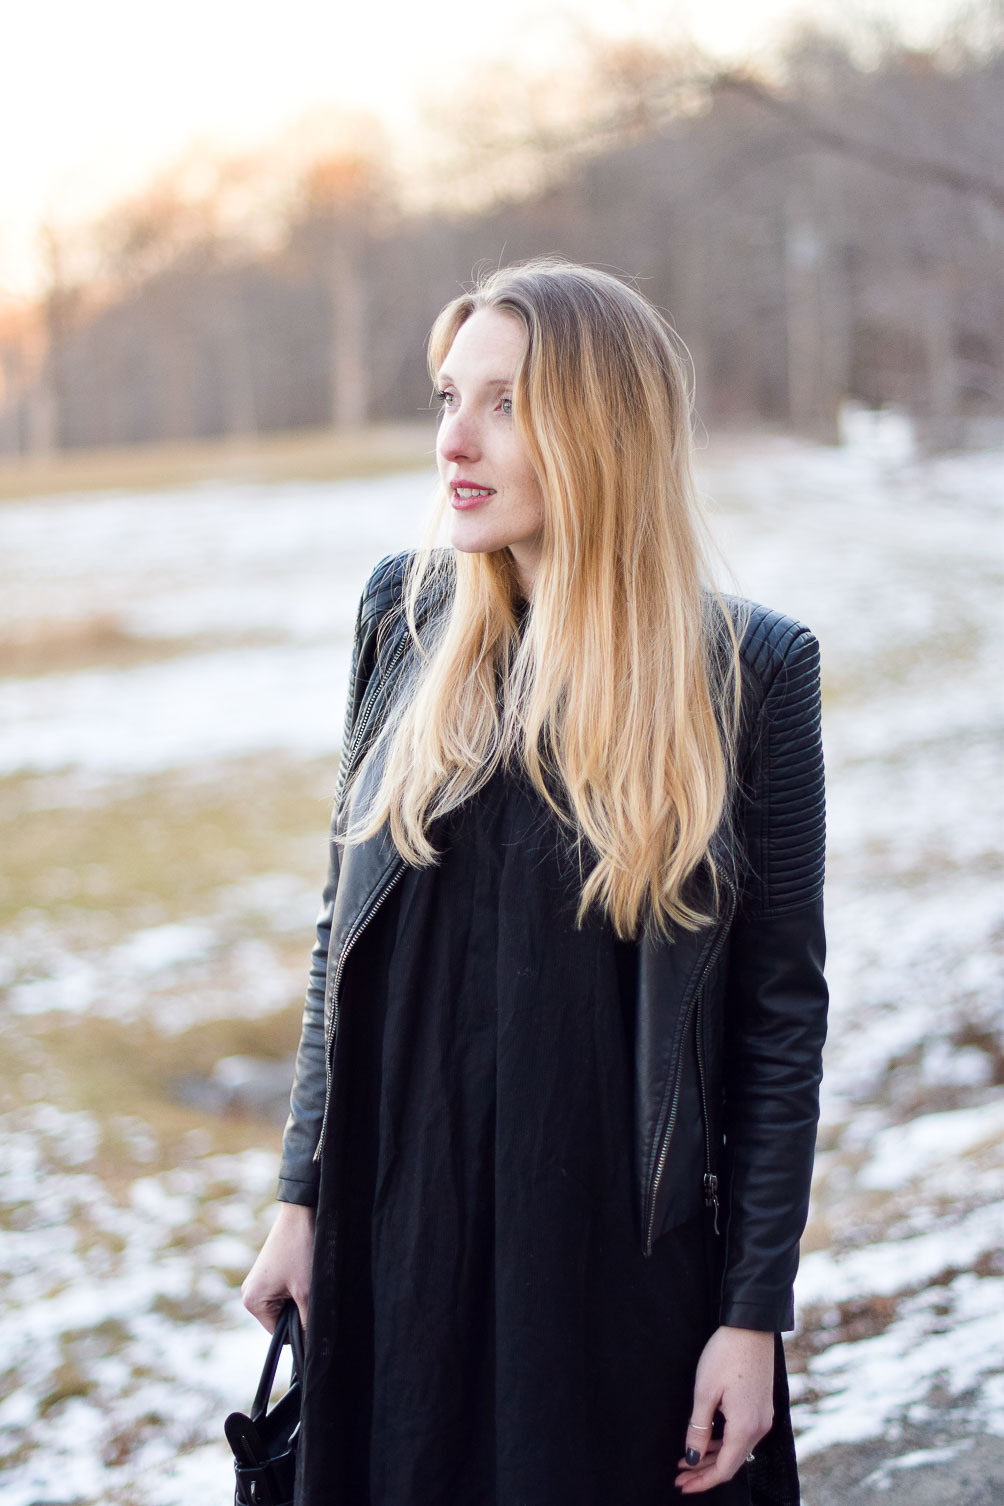 styling a black mumu dress with raw edge denim and vegan leather moto jacket